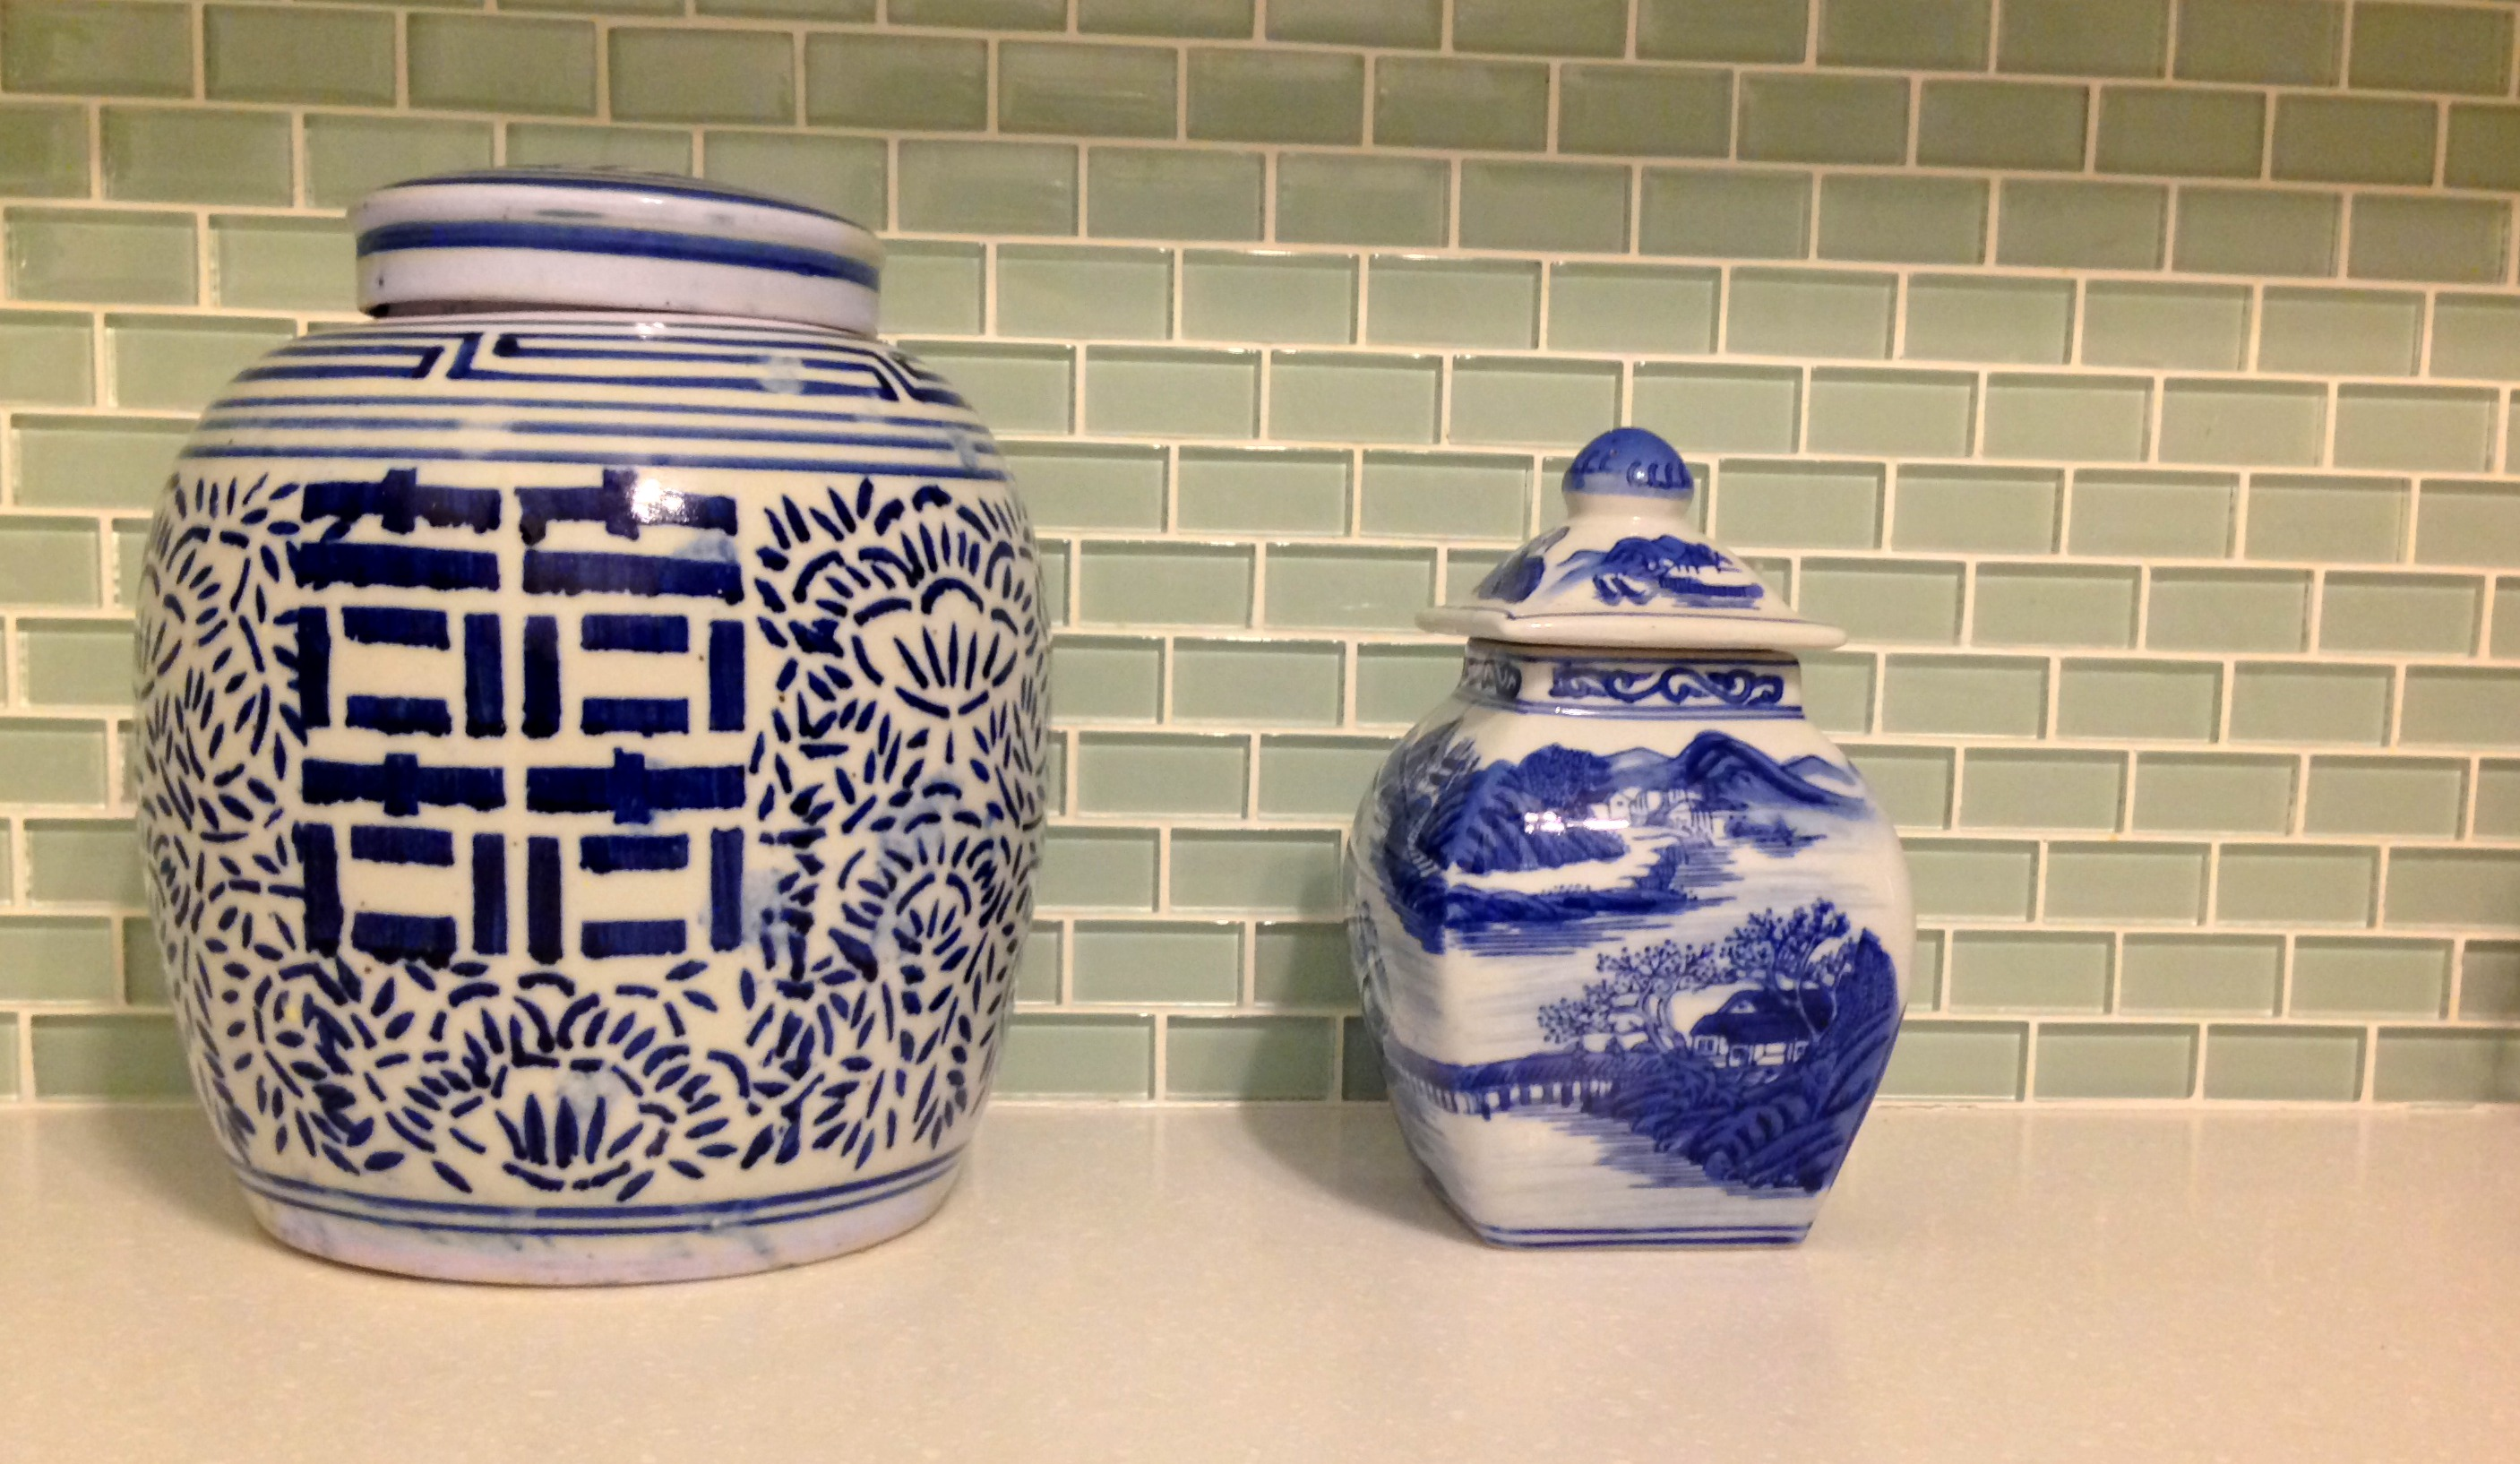 For a twist on canisters, mix in some blue porcelain ginger jars. ($18 & $10 from local consignment/antique stores)